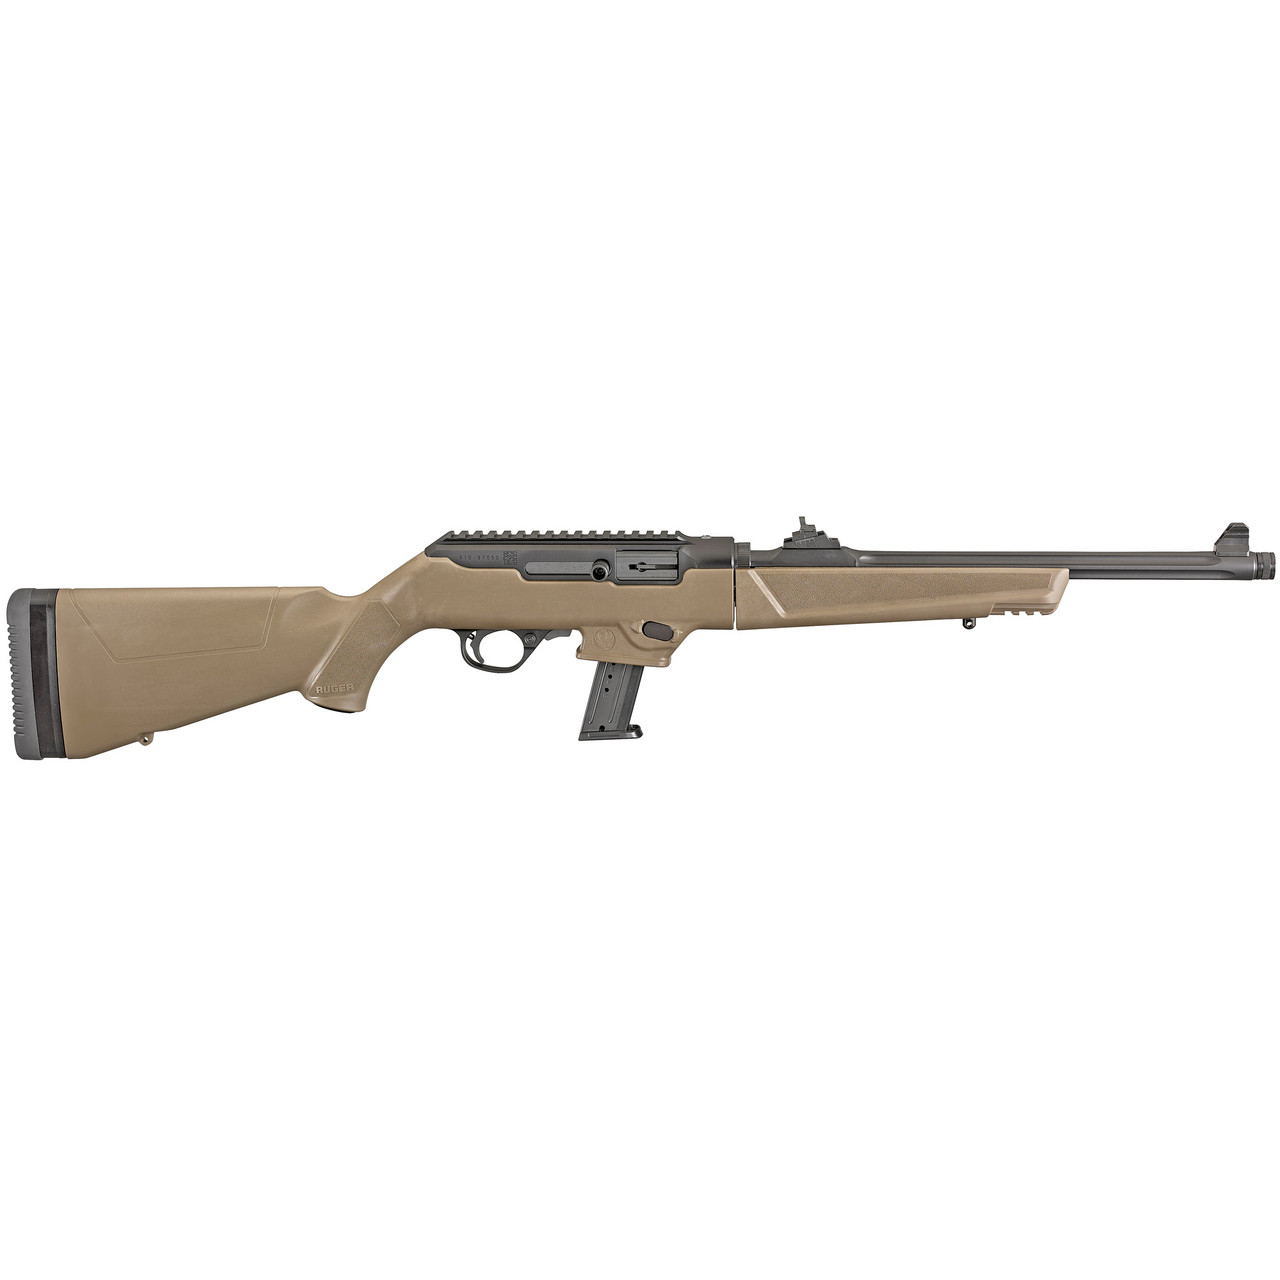 Ruger PC Carbine Takedown TALO Exclusive CALIFORNIA LEGAL - 9mm - FDE